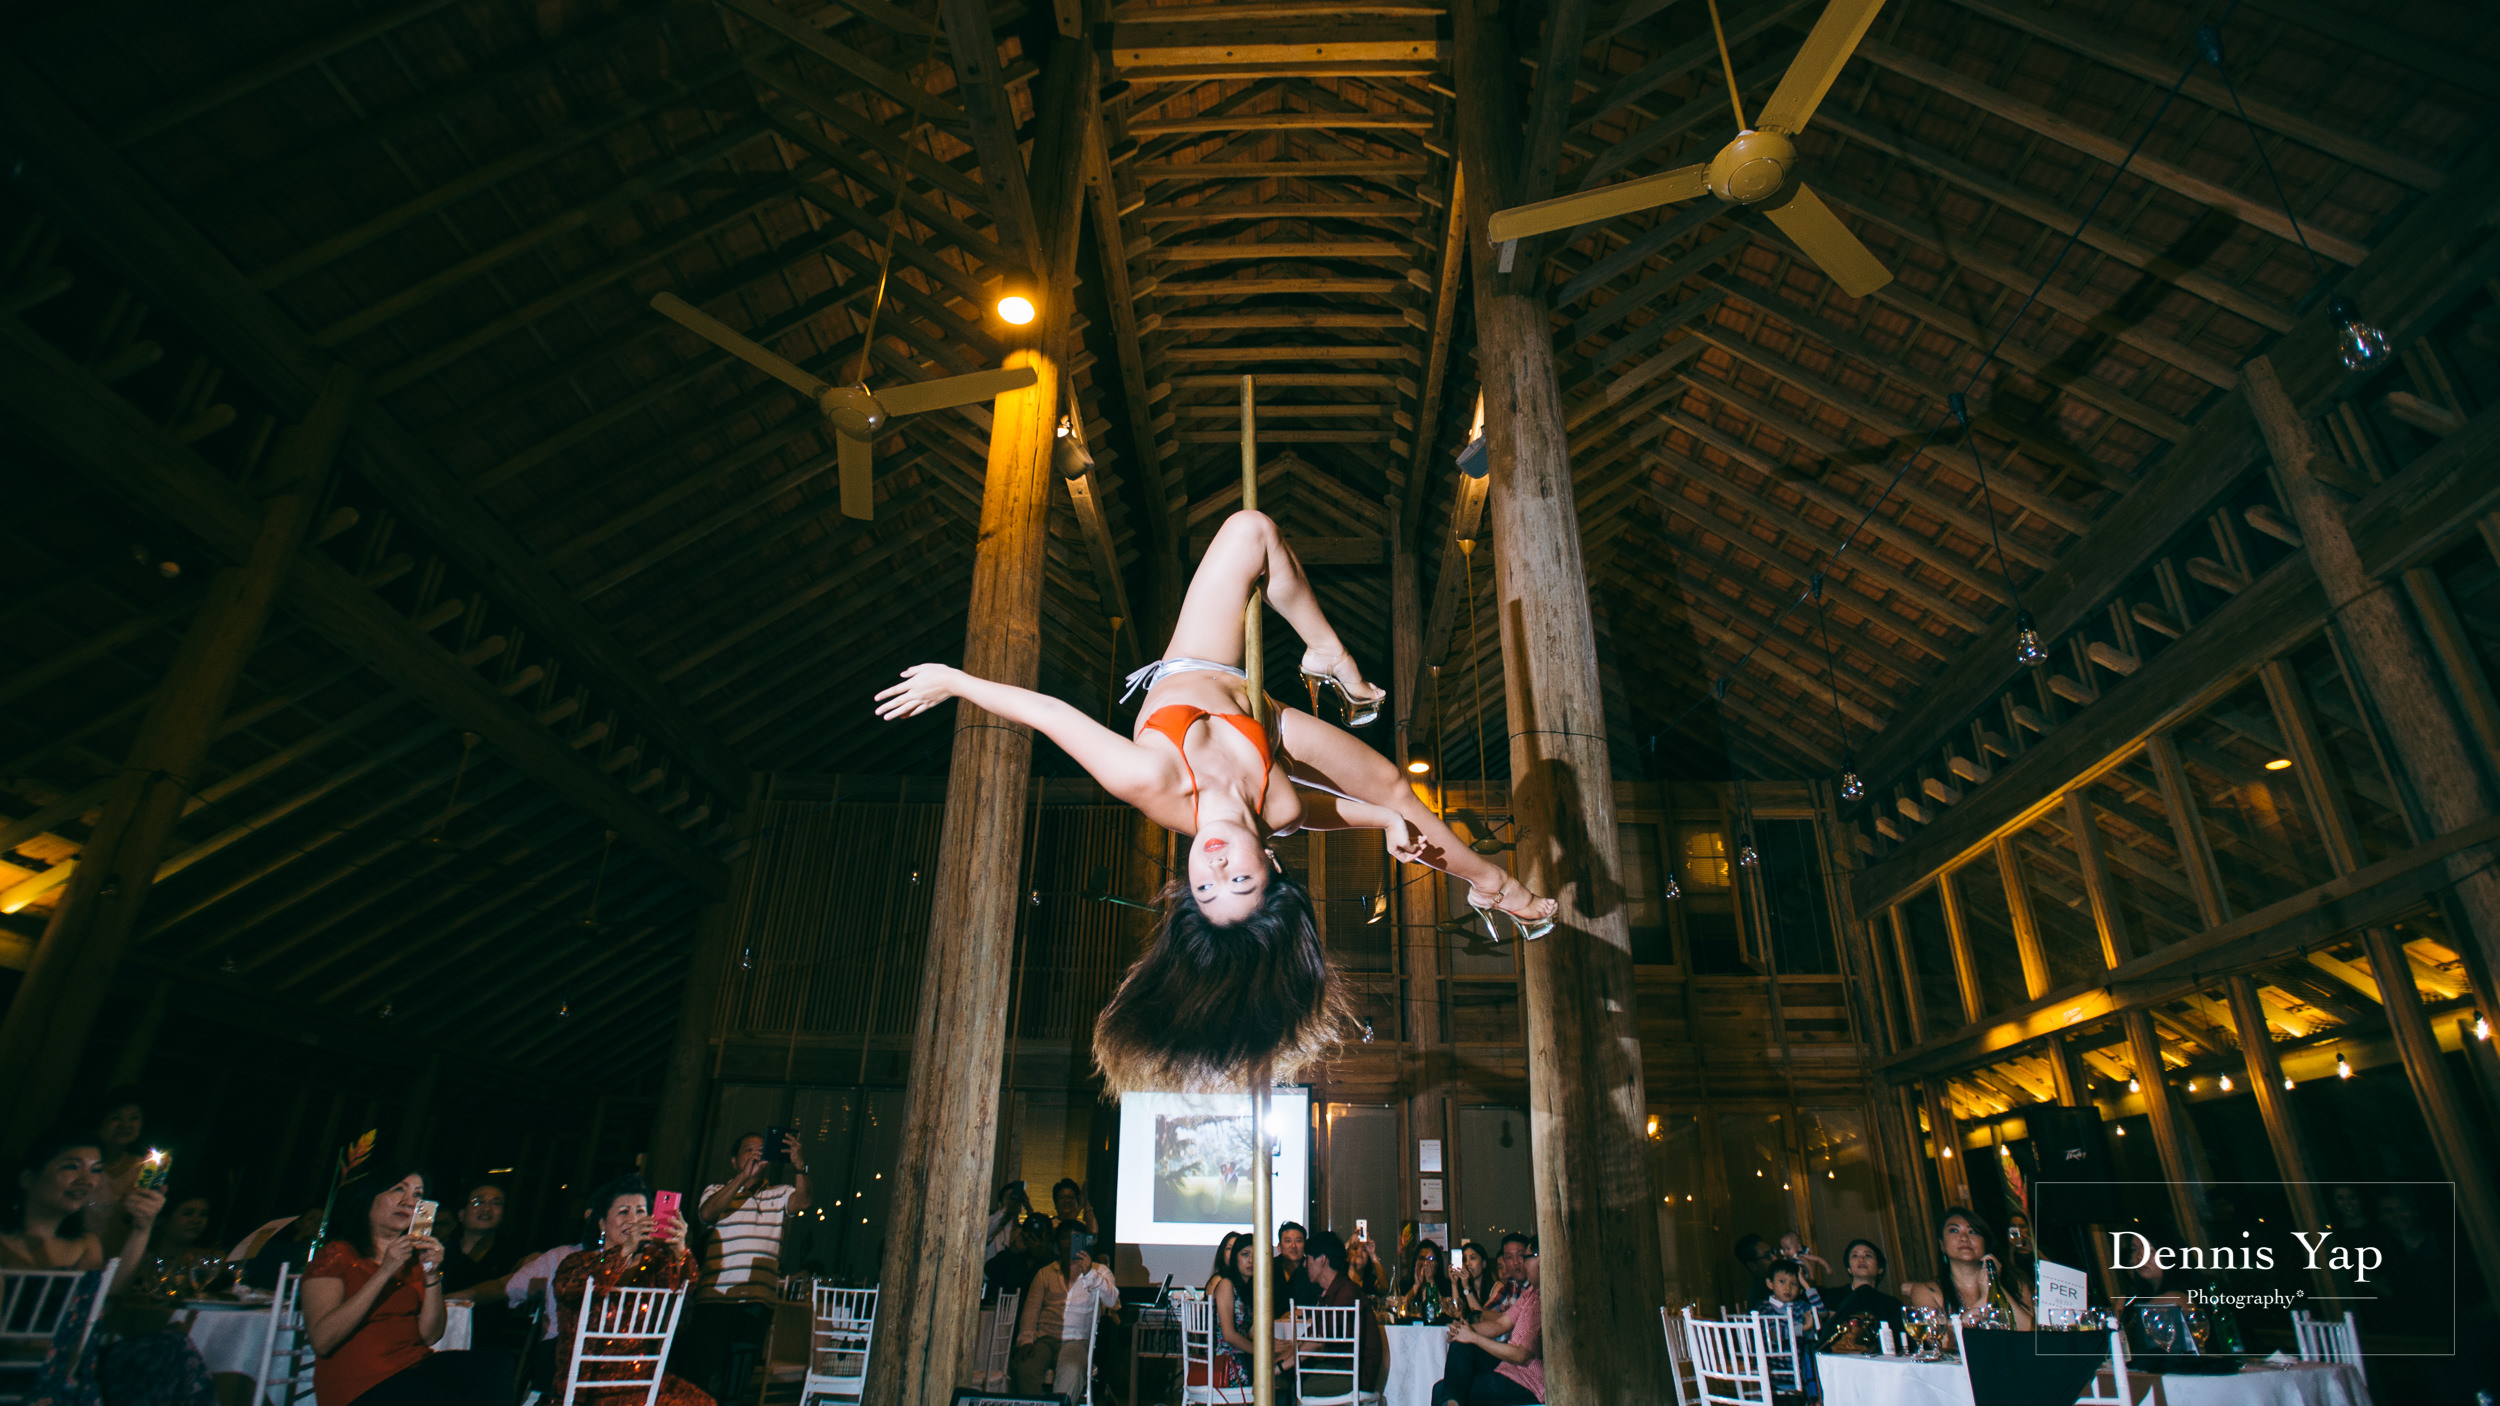 jung munn yein wedding day janda baik endarong dennis yap photography pole dancing malaysia-23.jpg